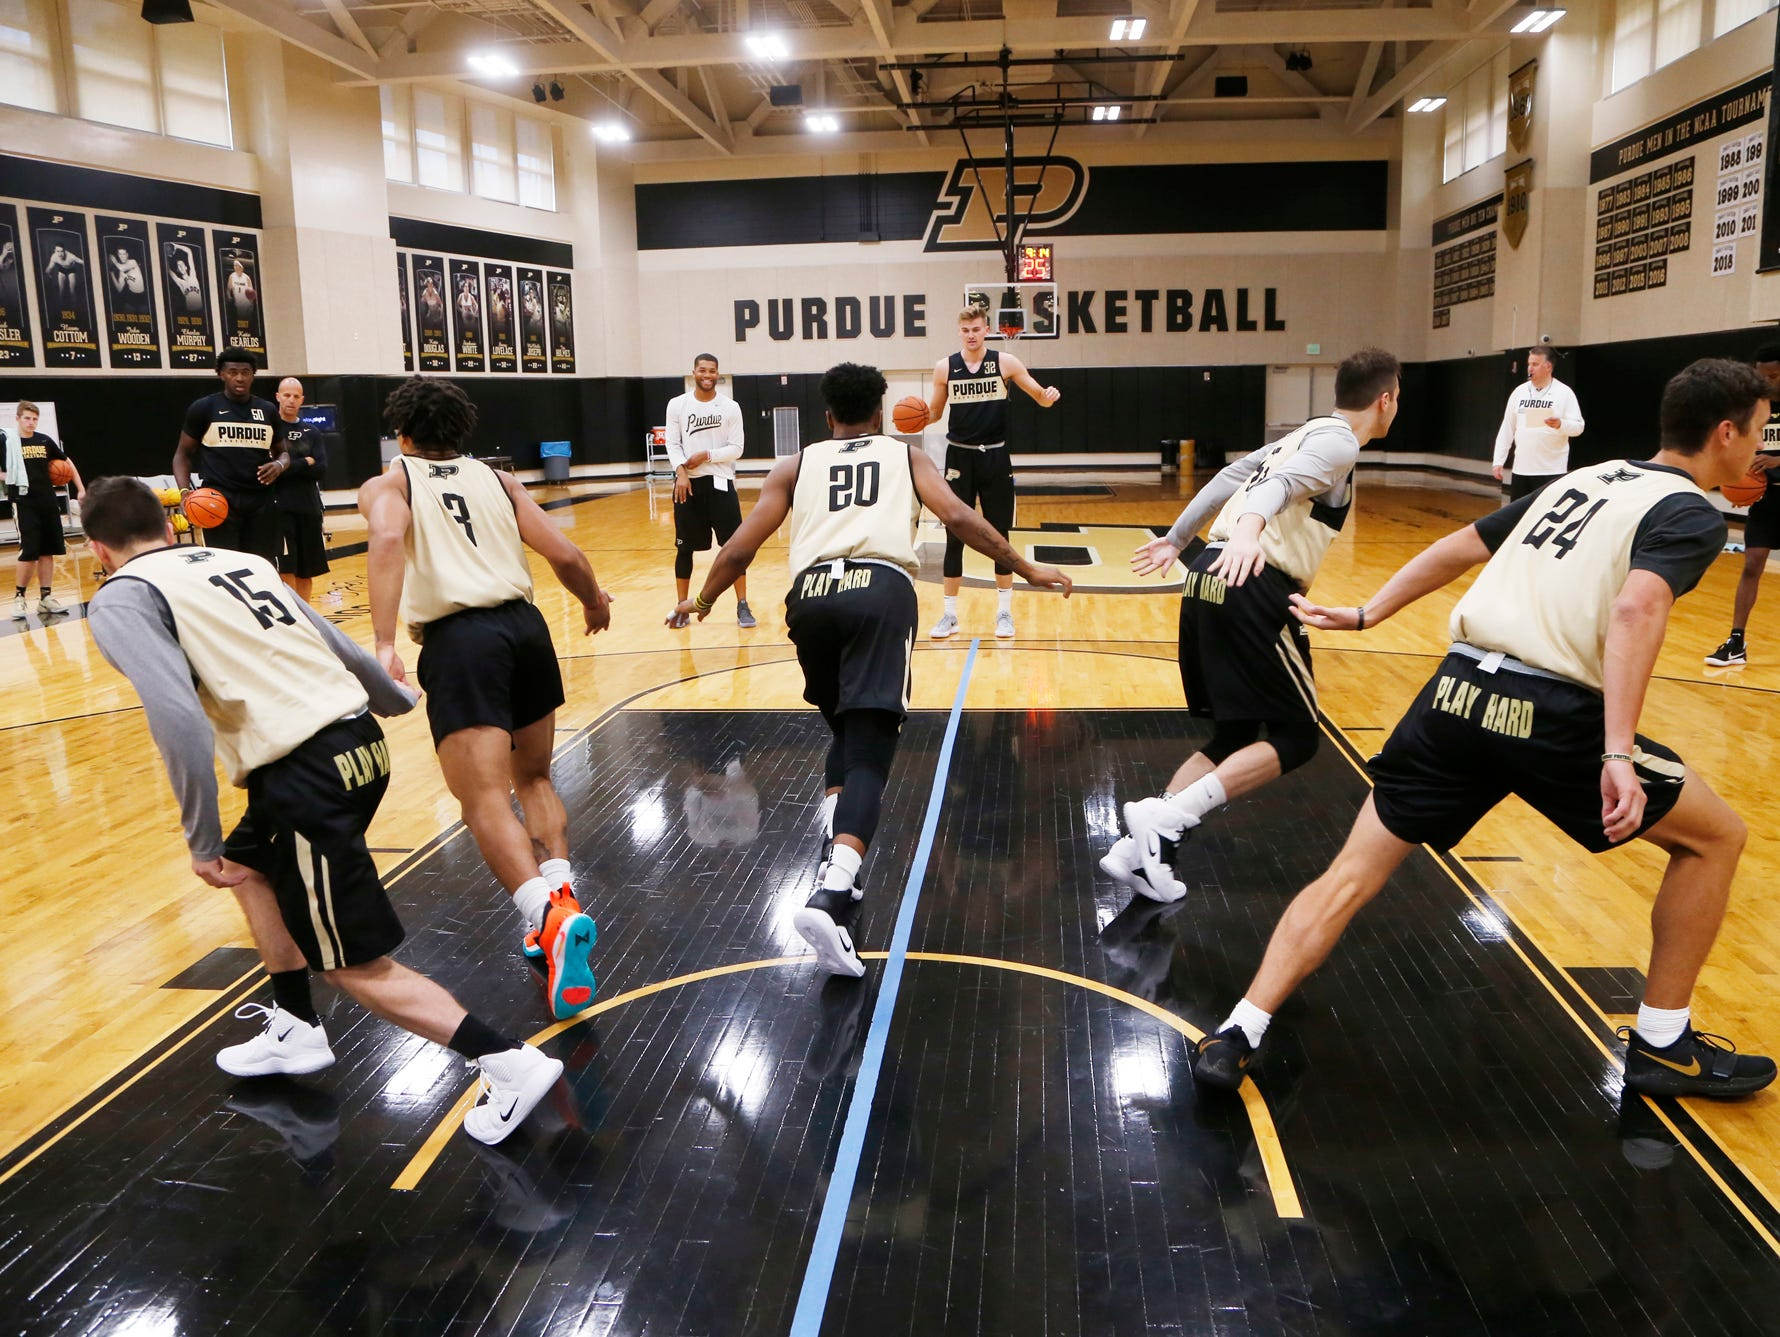 Players begin a drill during the first official practice of the season for Purdue men's basketball Tuesday, September 25, 2018, at Cardinal Court in Mackey Arena.